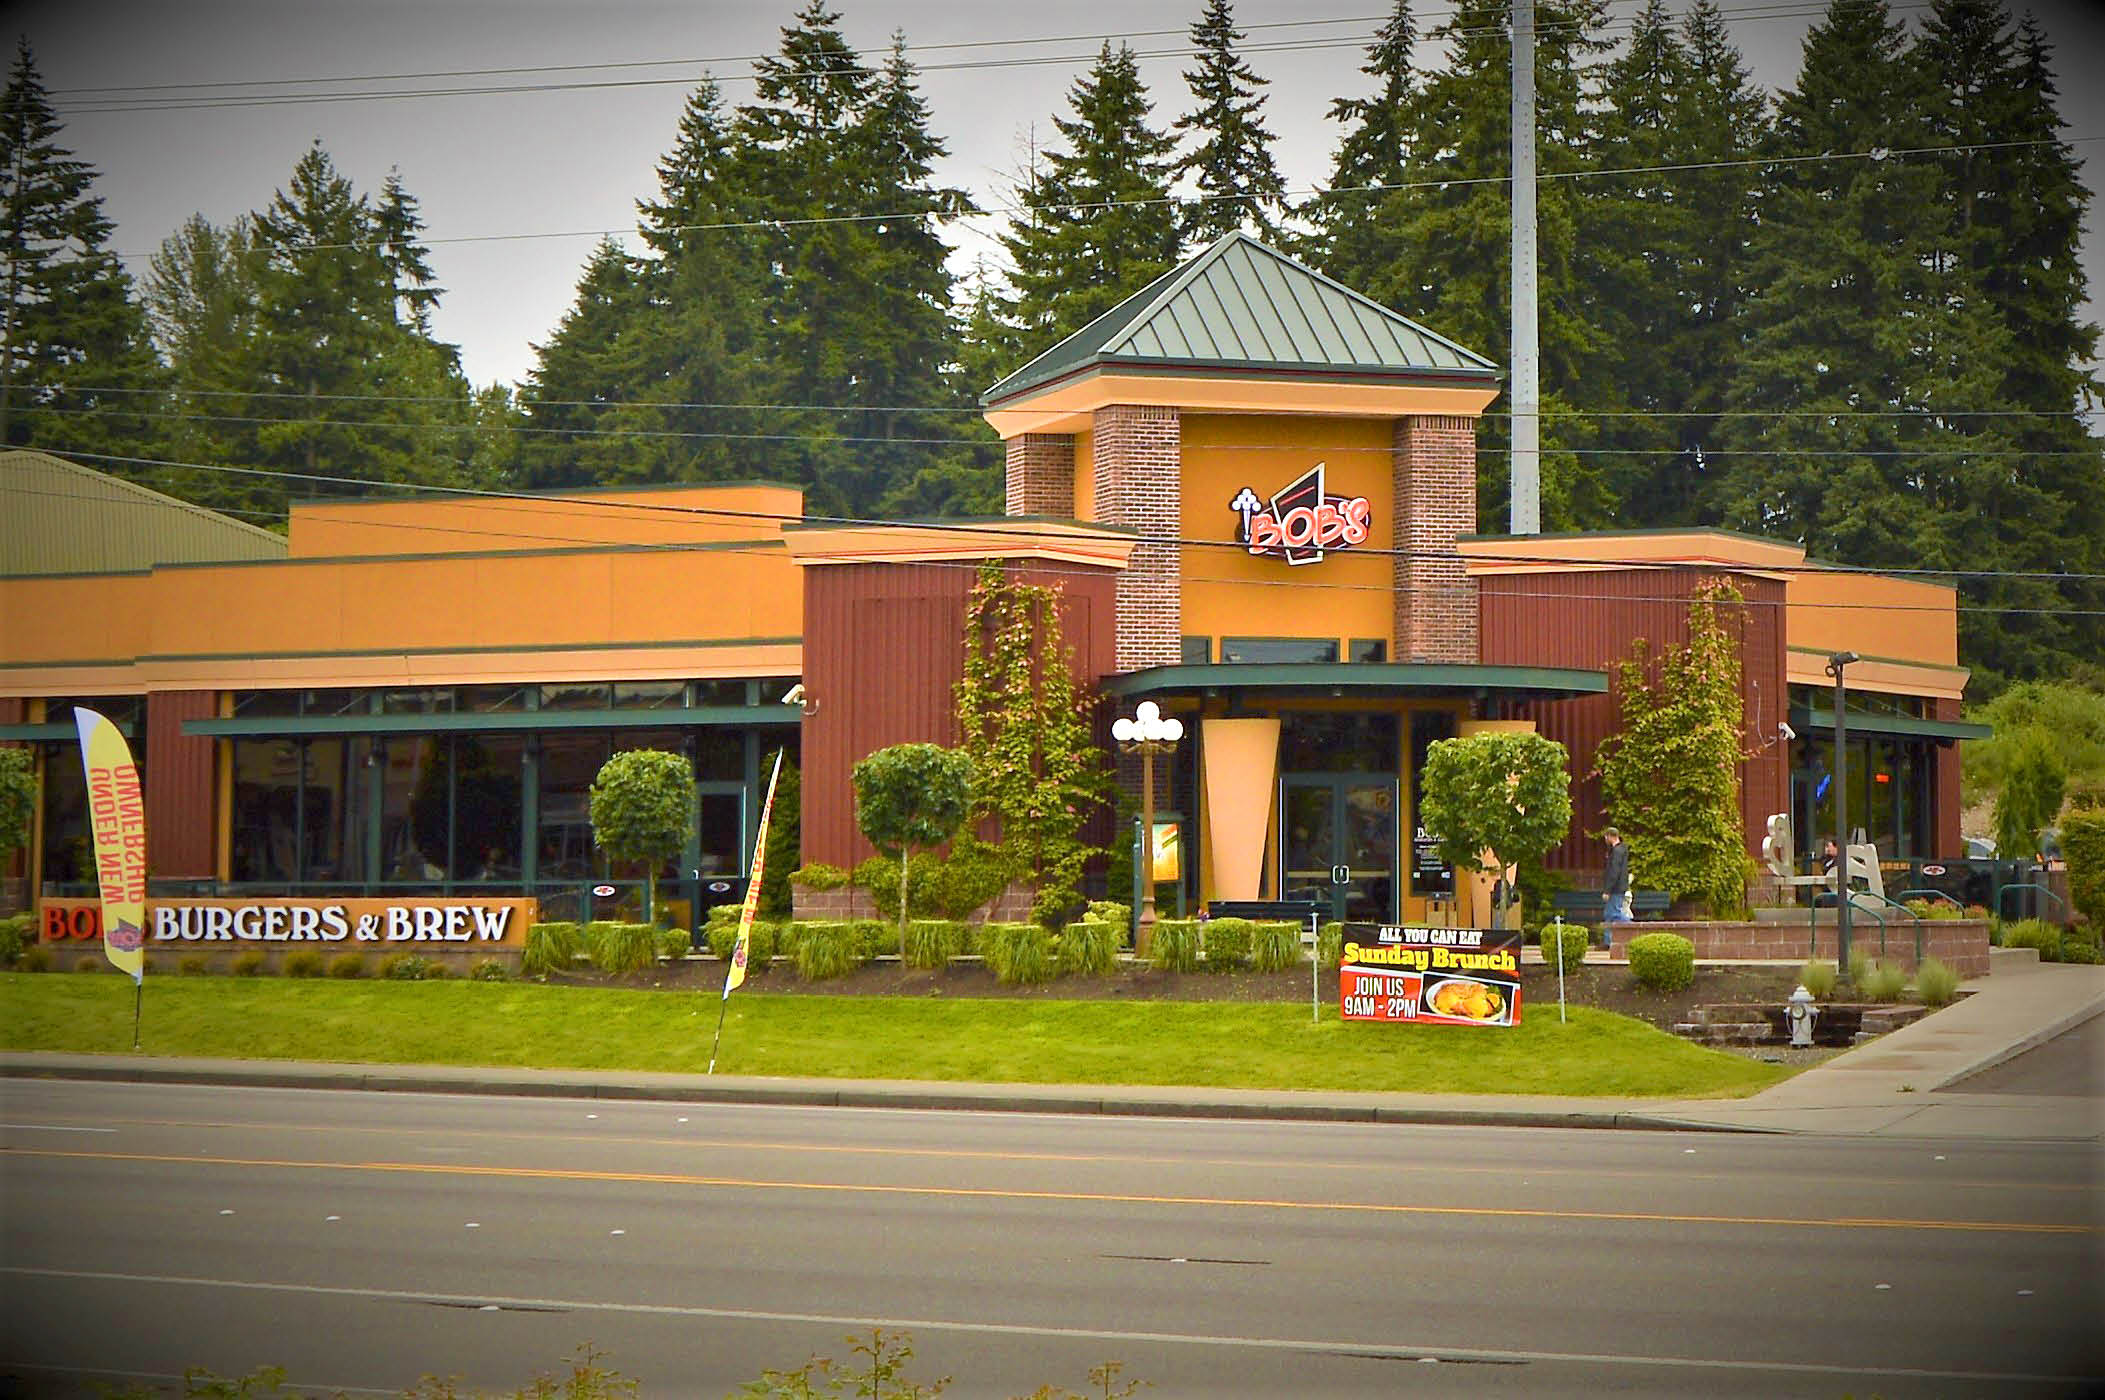 bob's burgers and brew restaurant puyallup store front